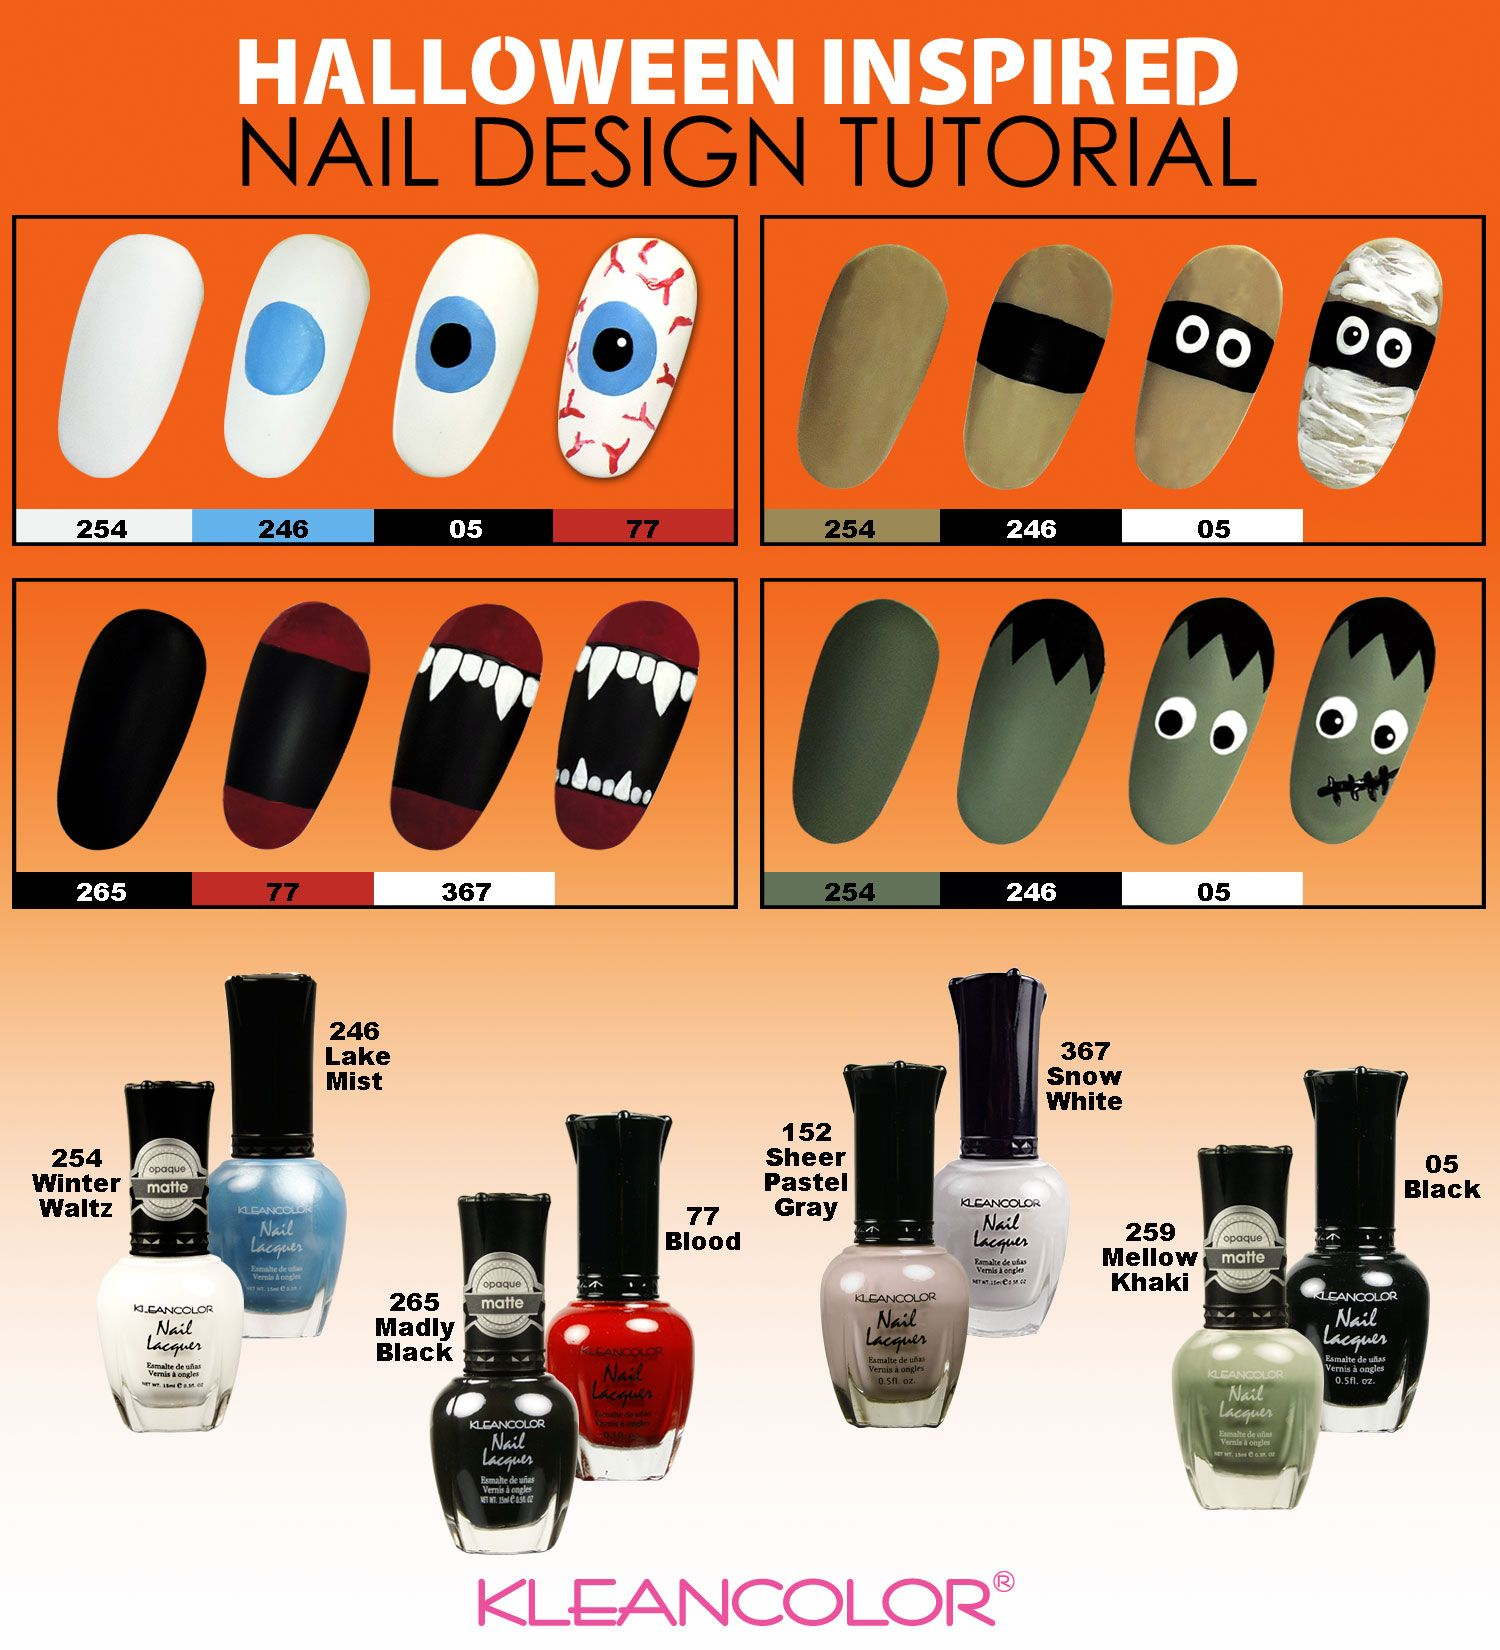 The countdown to Halloween begins! Easy steps for spooky and cute nail looks! Try them if you dare.  #Halloween #Kleancolor #NailArt #NailDesign #HalloweenNails #Boo